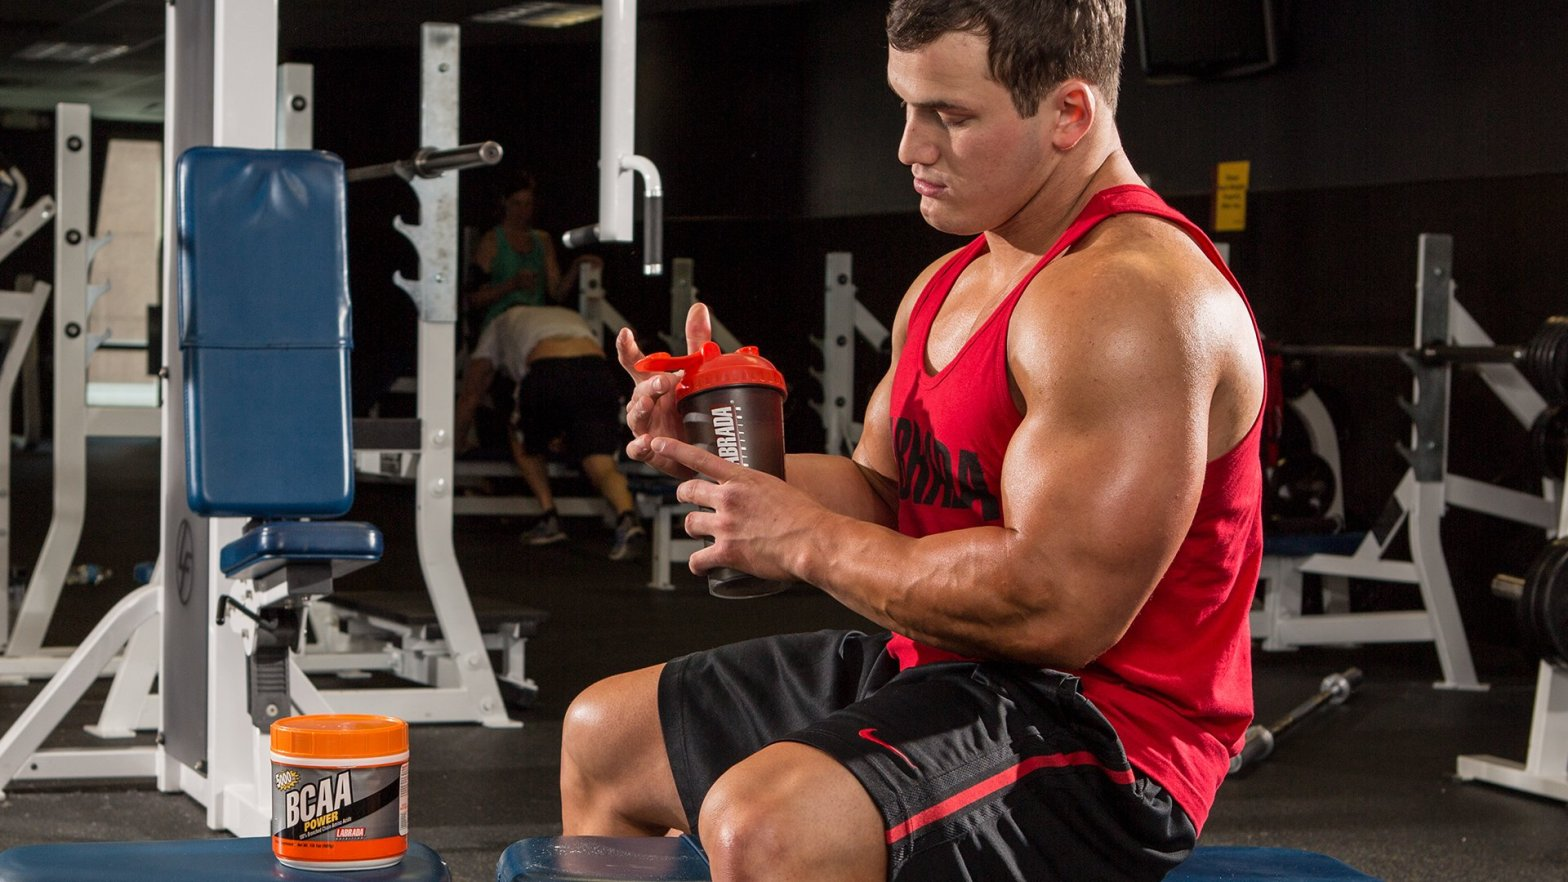 10 Fitness Tips That Dont Rely On You Having Great Genetics